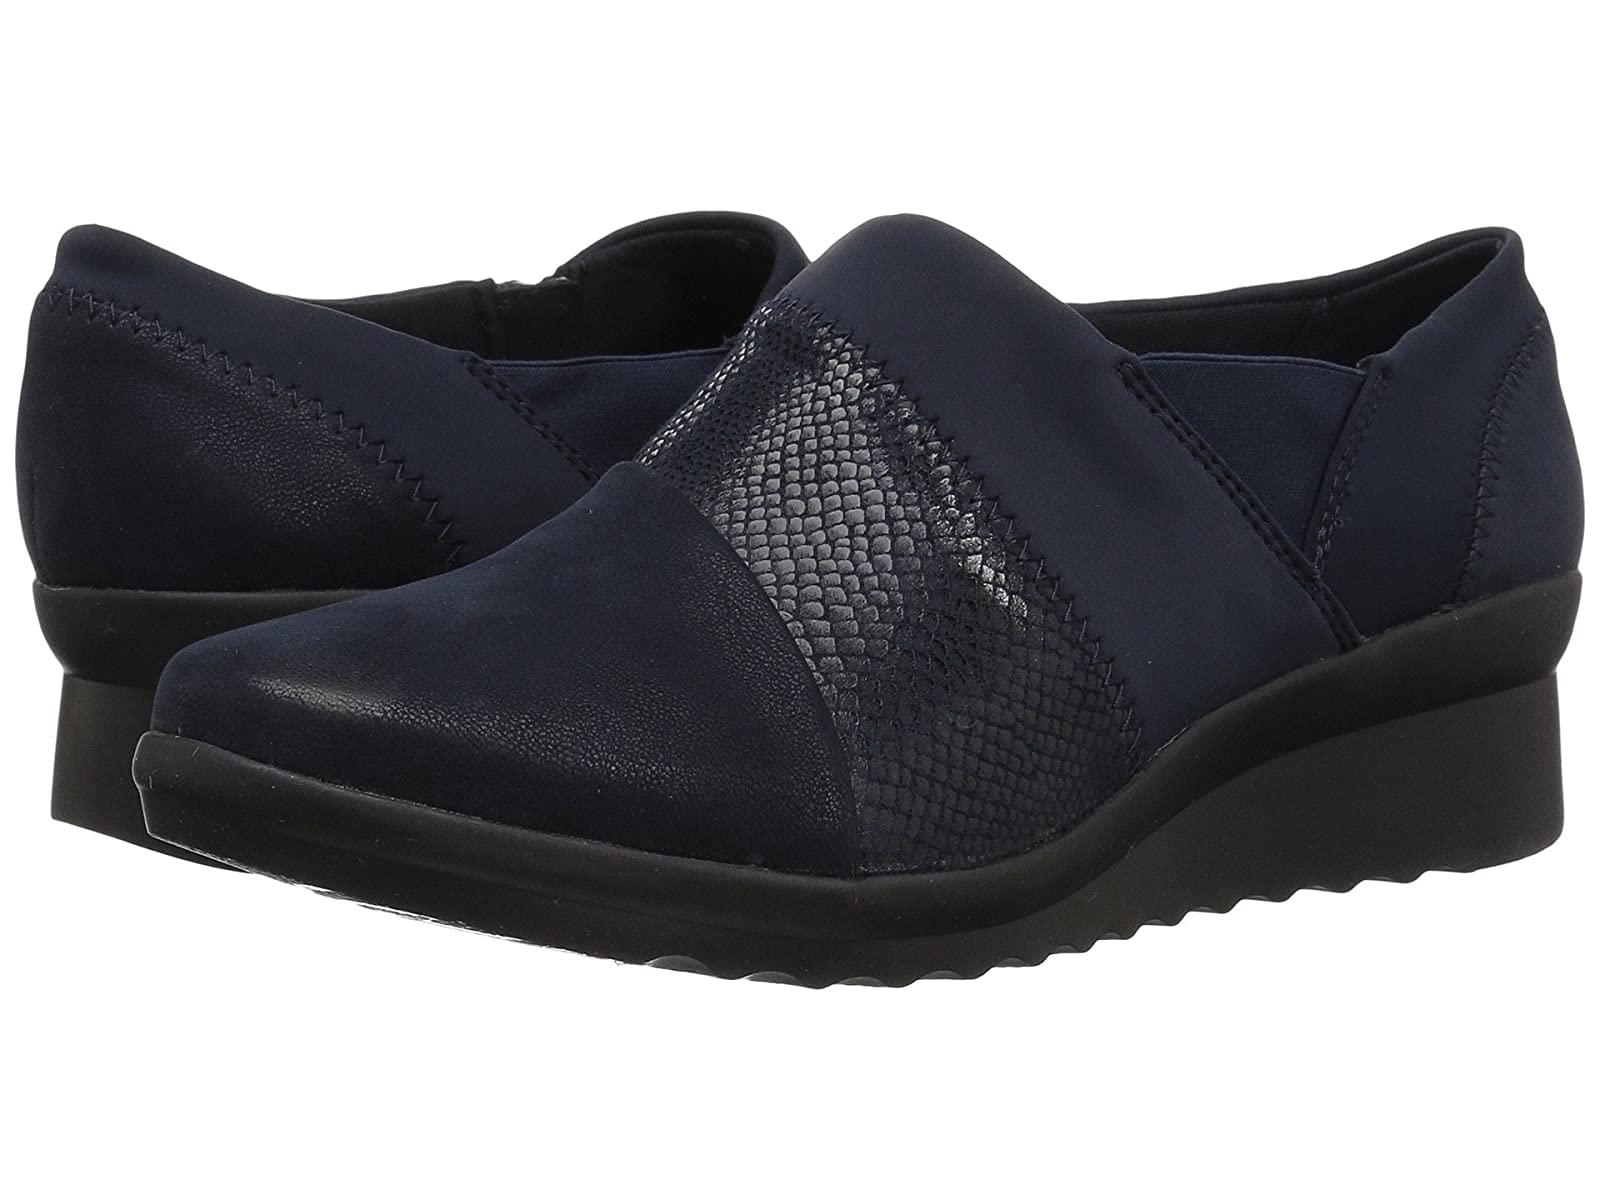 Clarks Caddell DenaliCheap and distinctive eye-catching shoes